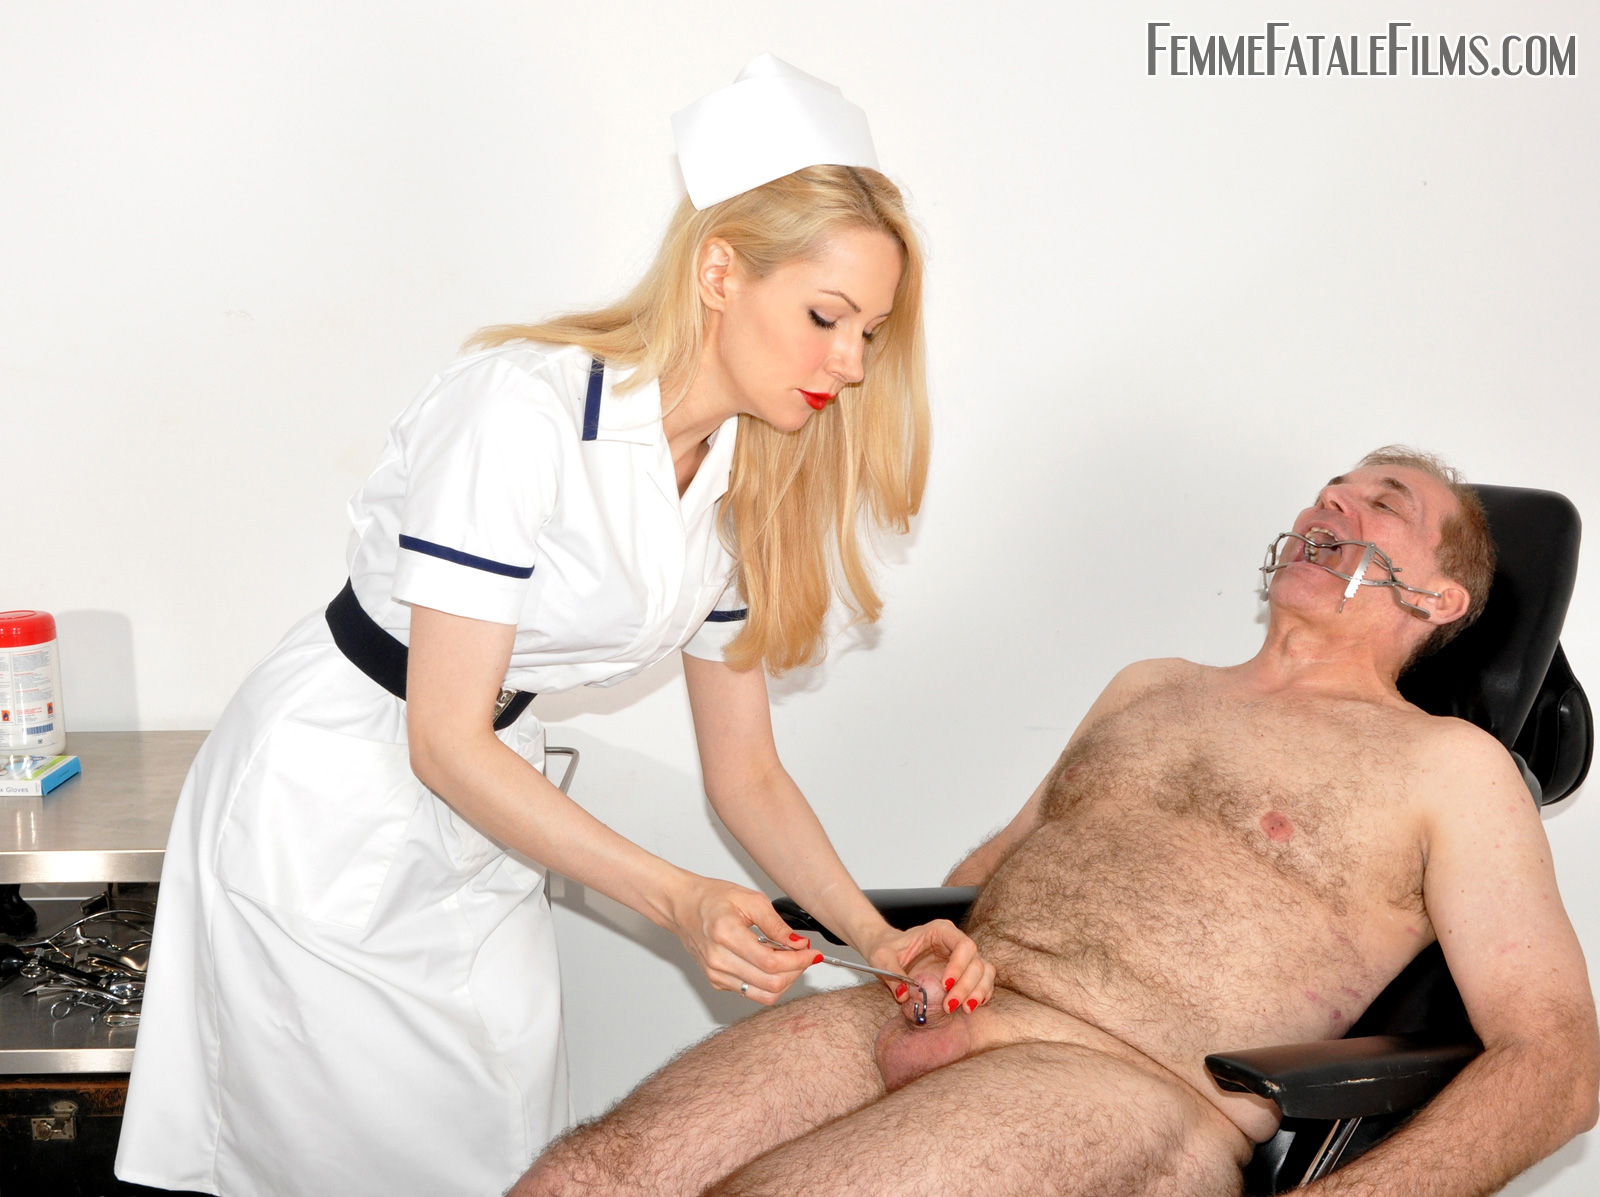 Nurse cocks pictures hentai pornstar